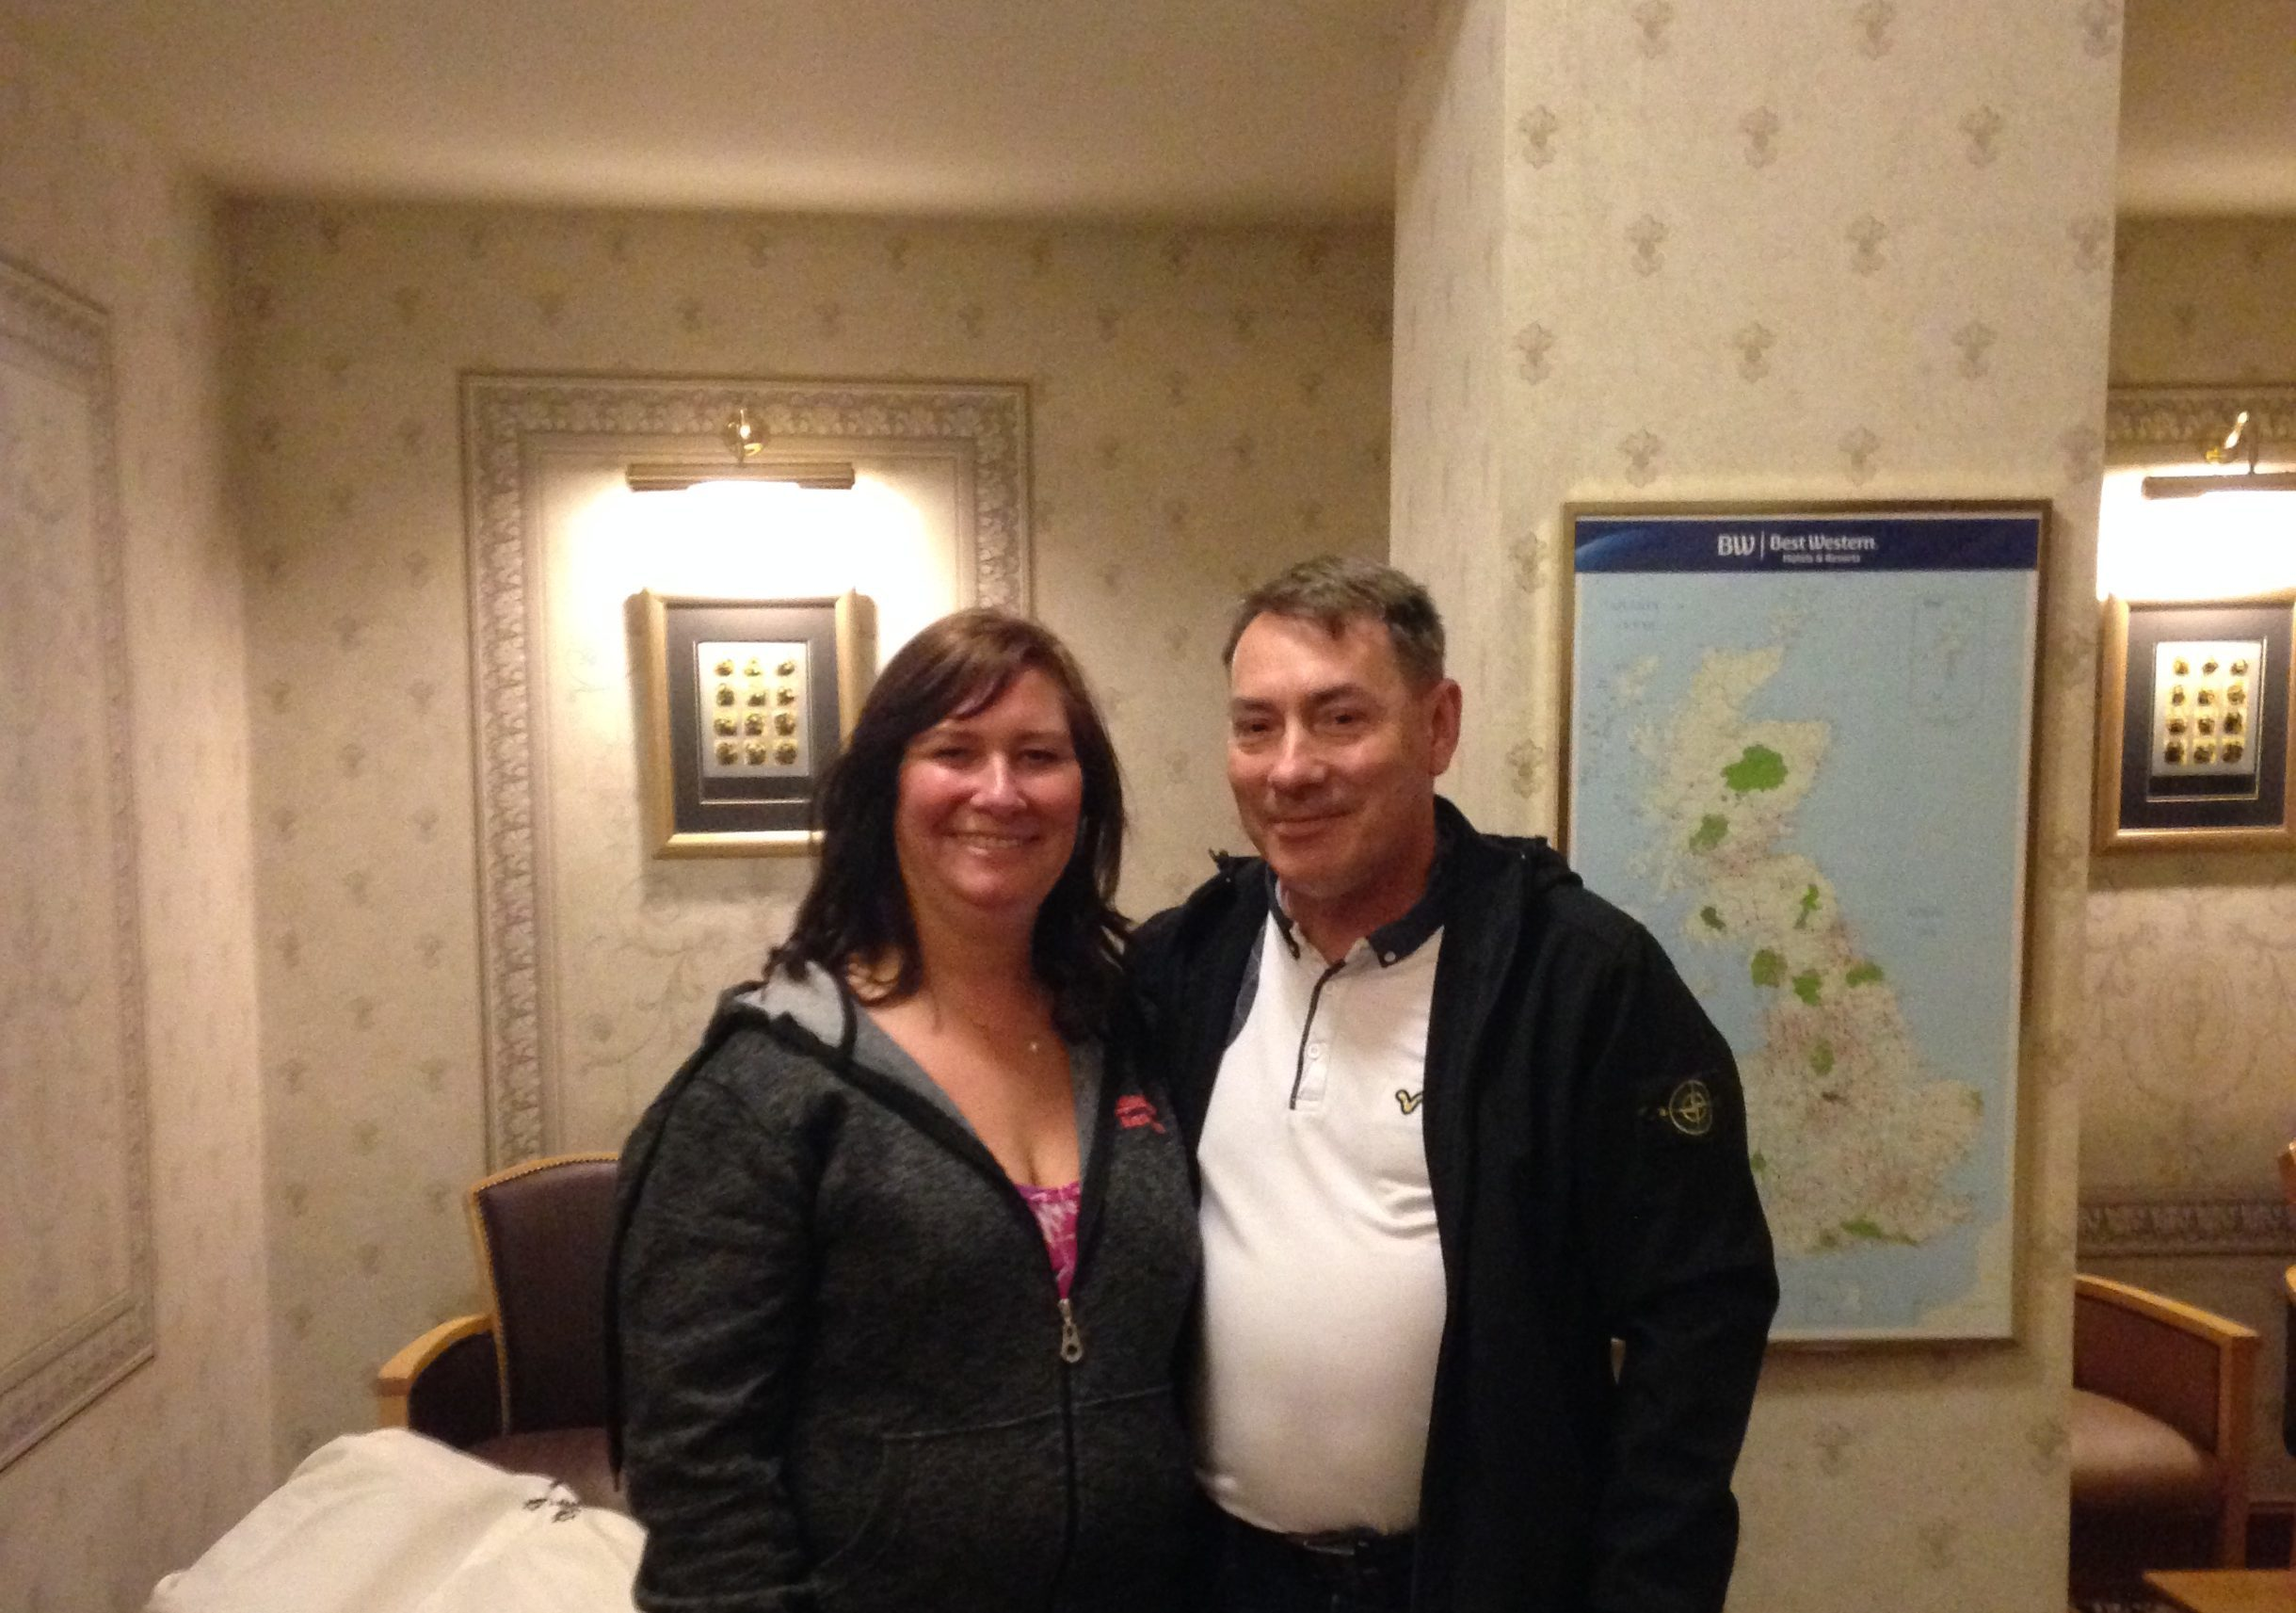 Keith and Sharon are happy after the Queens Hotel agreed to fund their first wedding anniversary celebration.